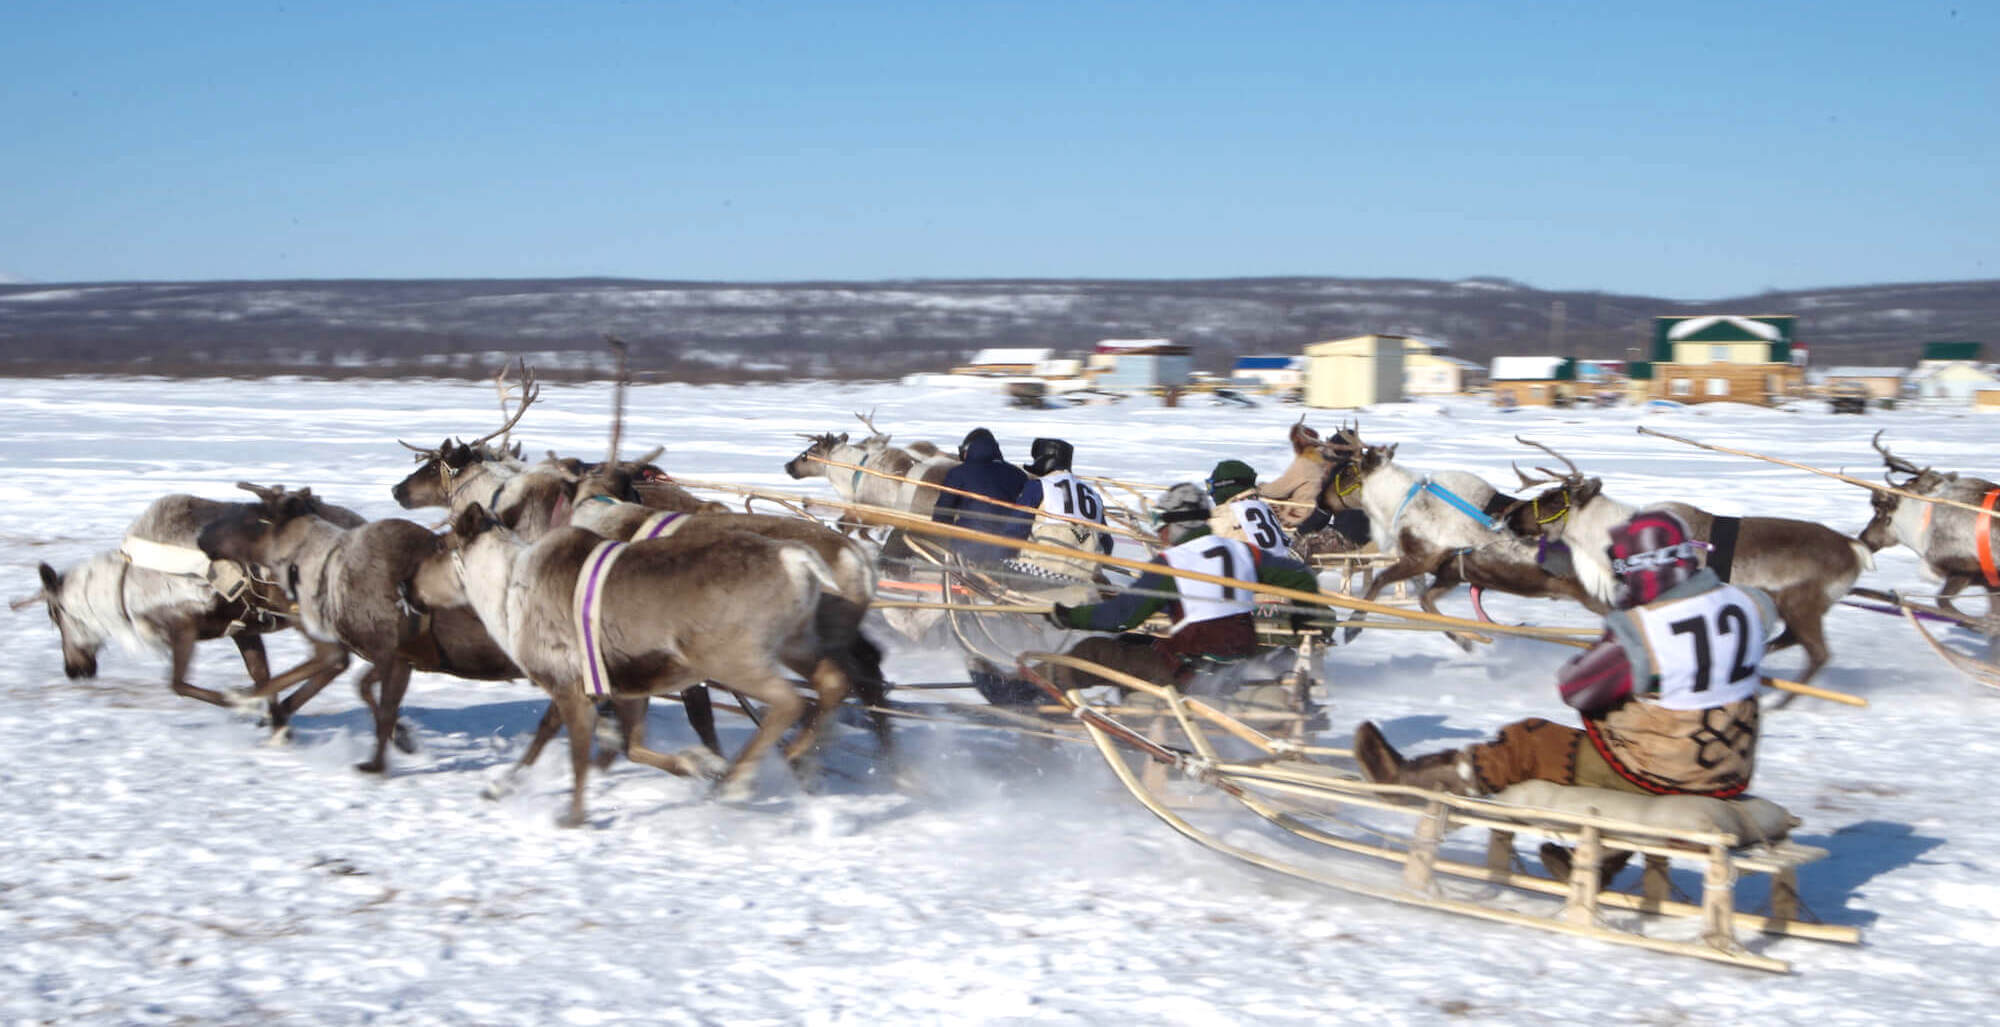 Reindeer race in the village during the festival